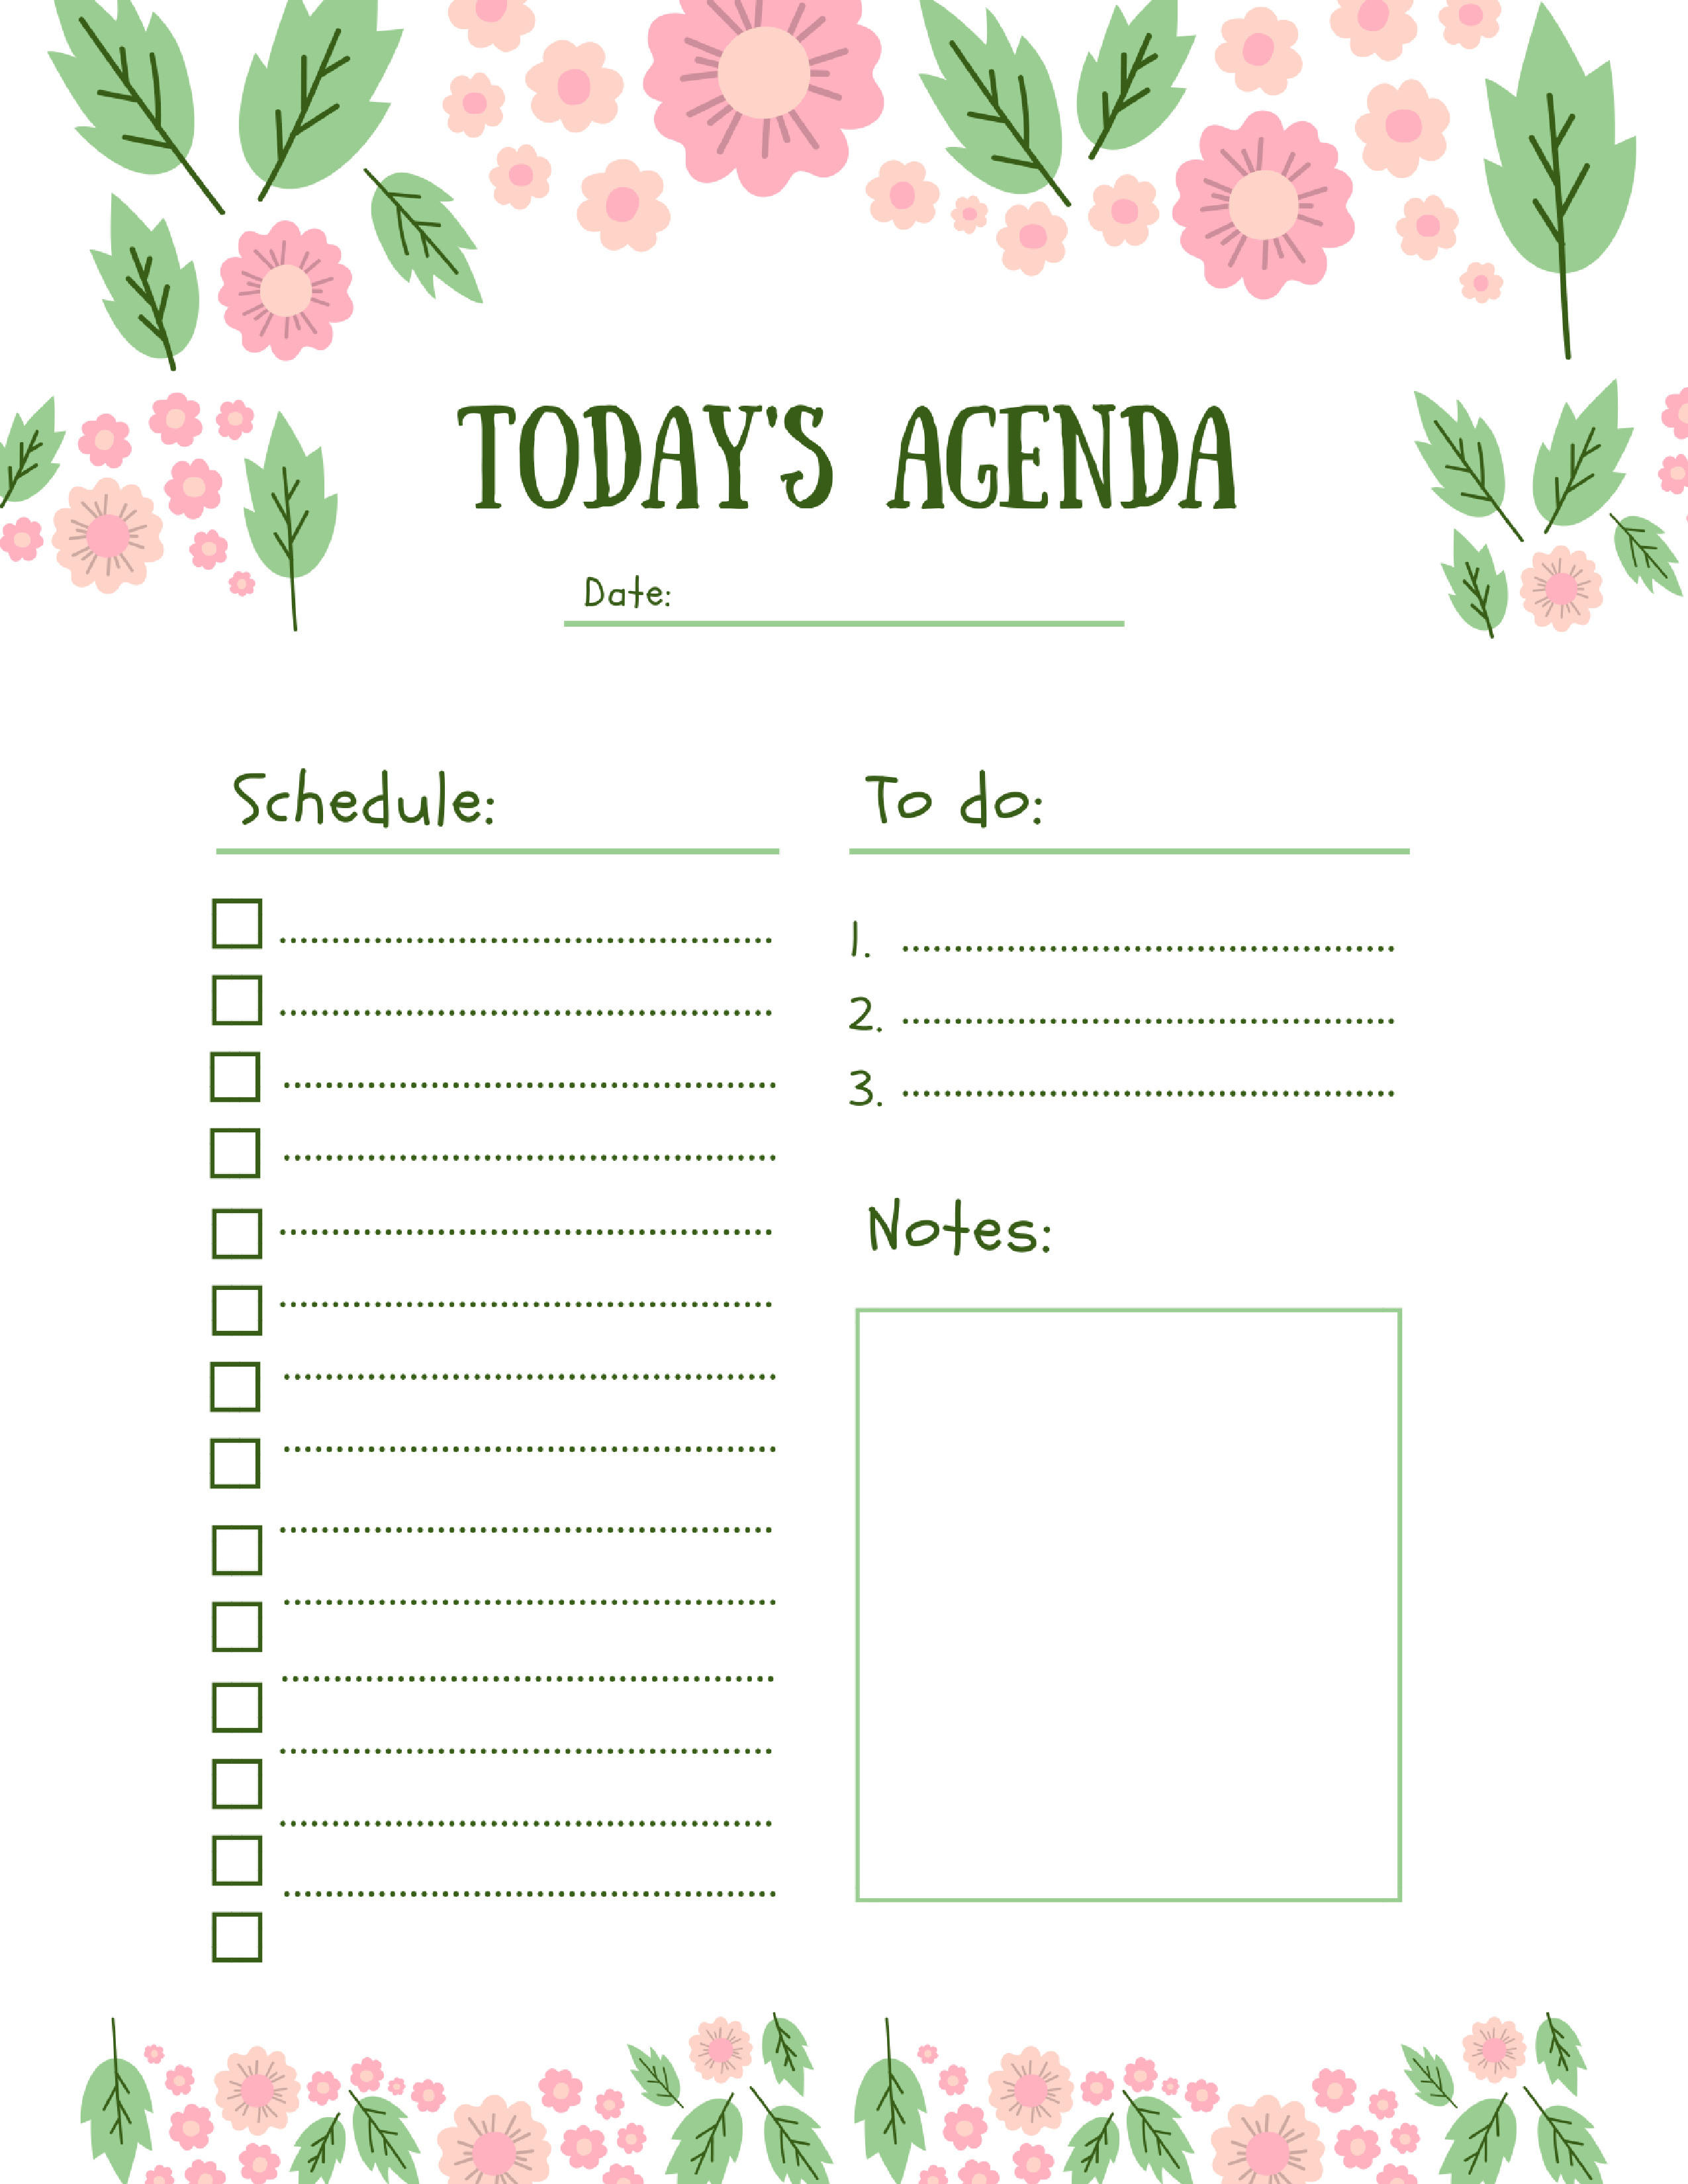 todays agenda free printable | Creating a Summer Schedule